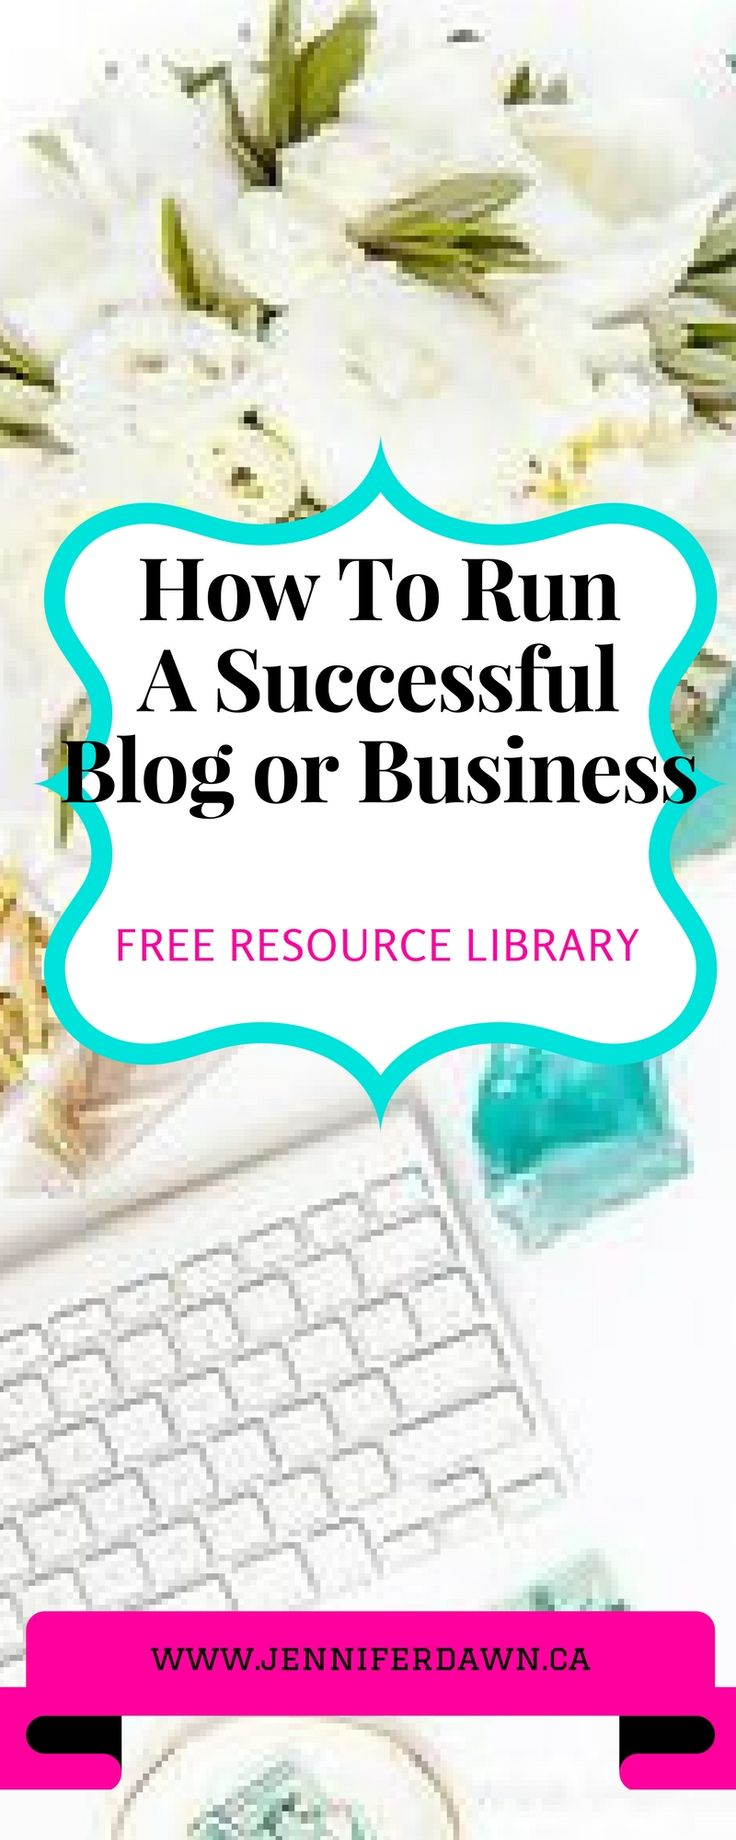 How I was able to earn over 3K in my 3rd month of Re-Branding my Blog. Blogging Tips / How To Start A Blog / Business Resources / Affiliate Marketing How To / Email Marketing / Branding / How To Work Online / How To Start A Home Business / High Paying Side Hustles